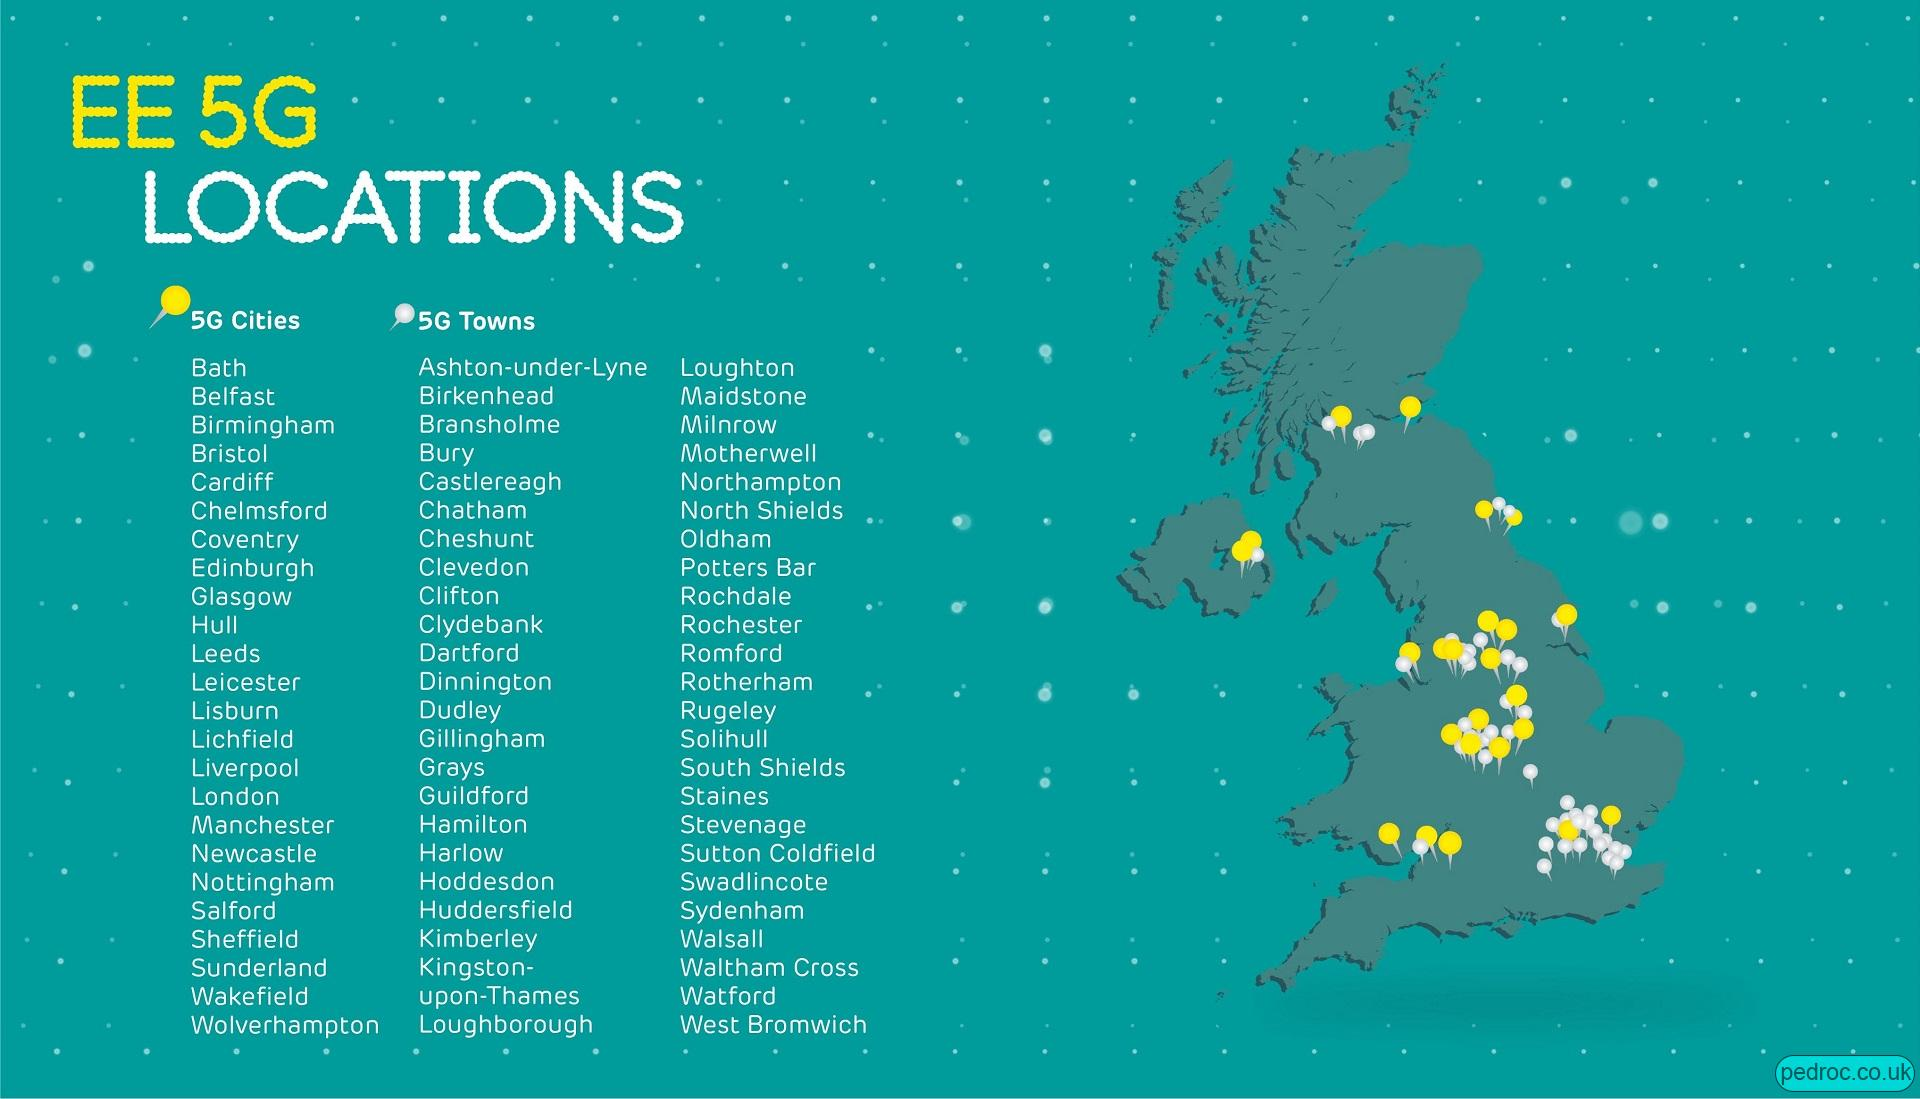 Locations of EE 5G as of March 2020.